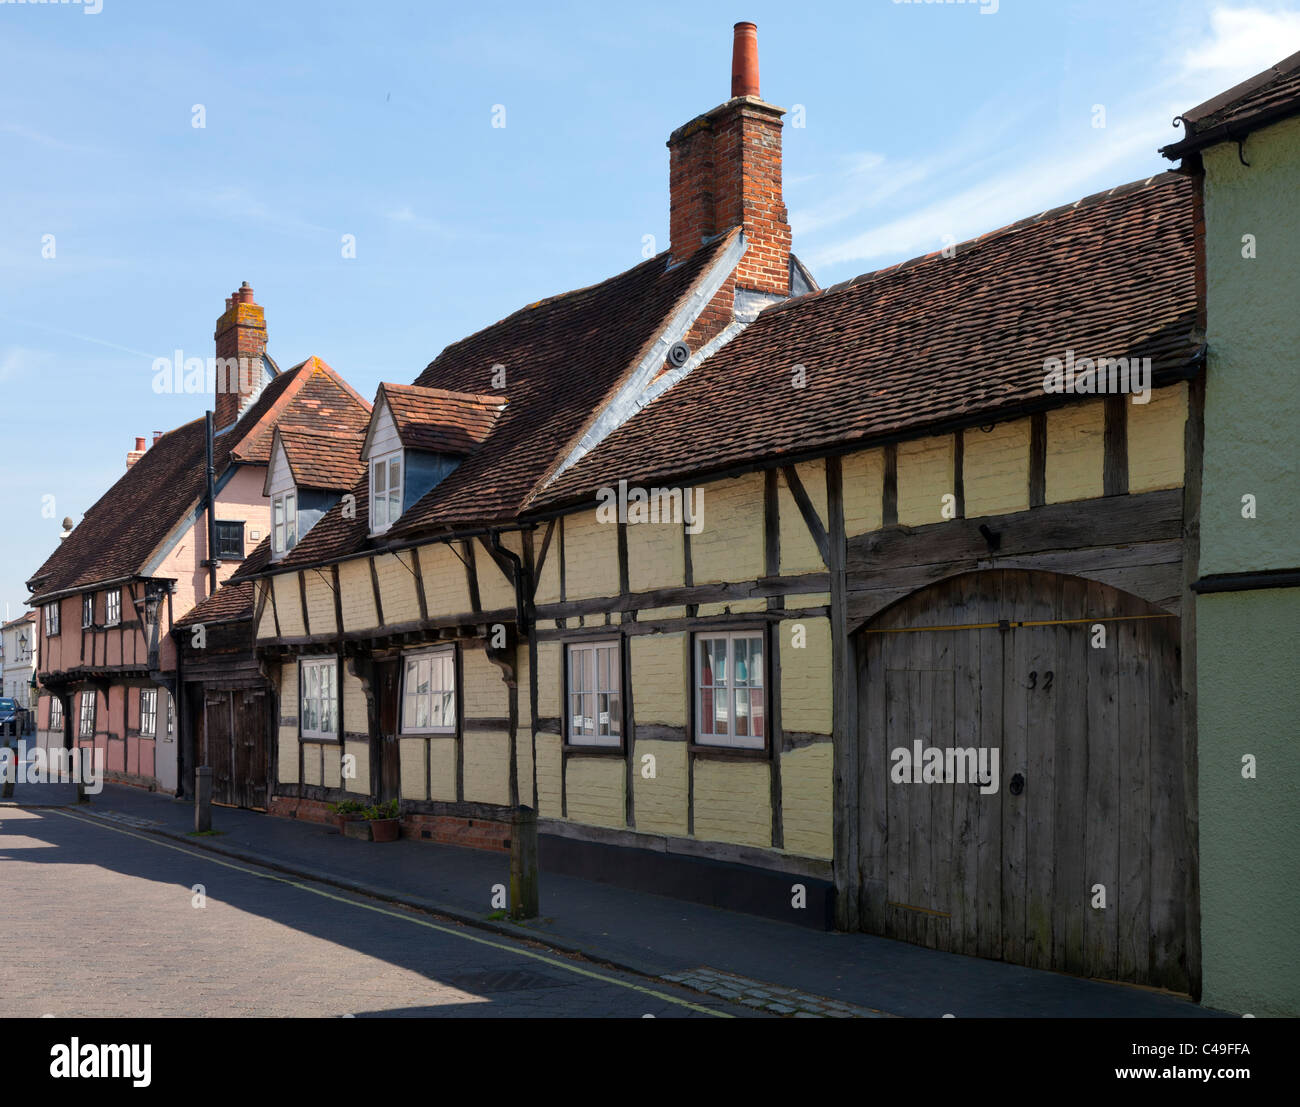 Old House dwelling Titchfield Hampshire England UK High Street timber frame wood wooden yellow pink weathered oak - Stock Image